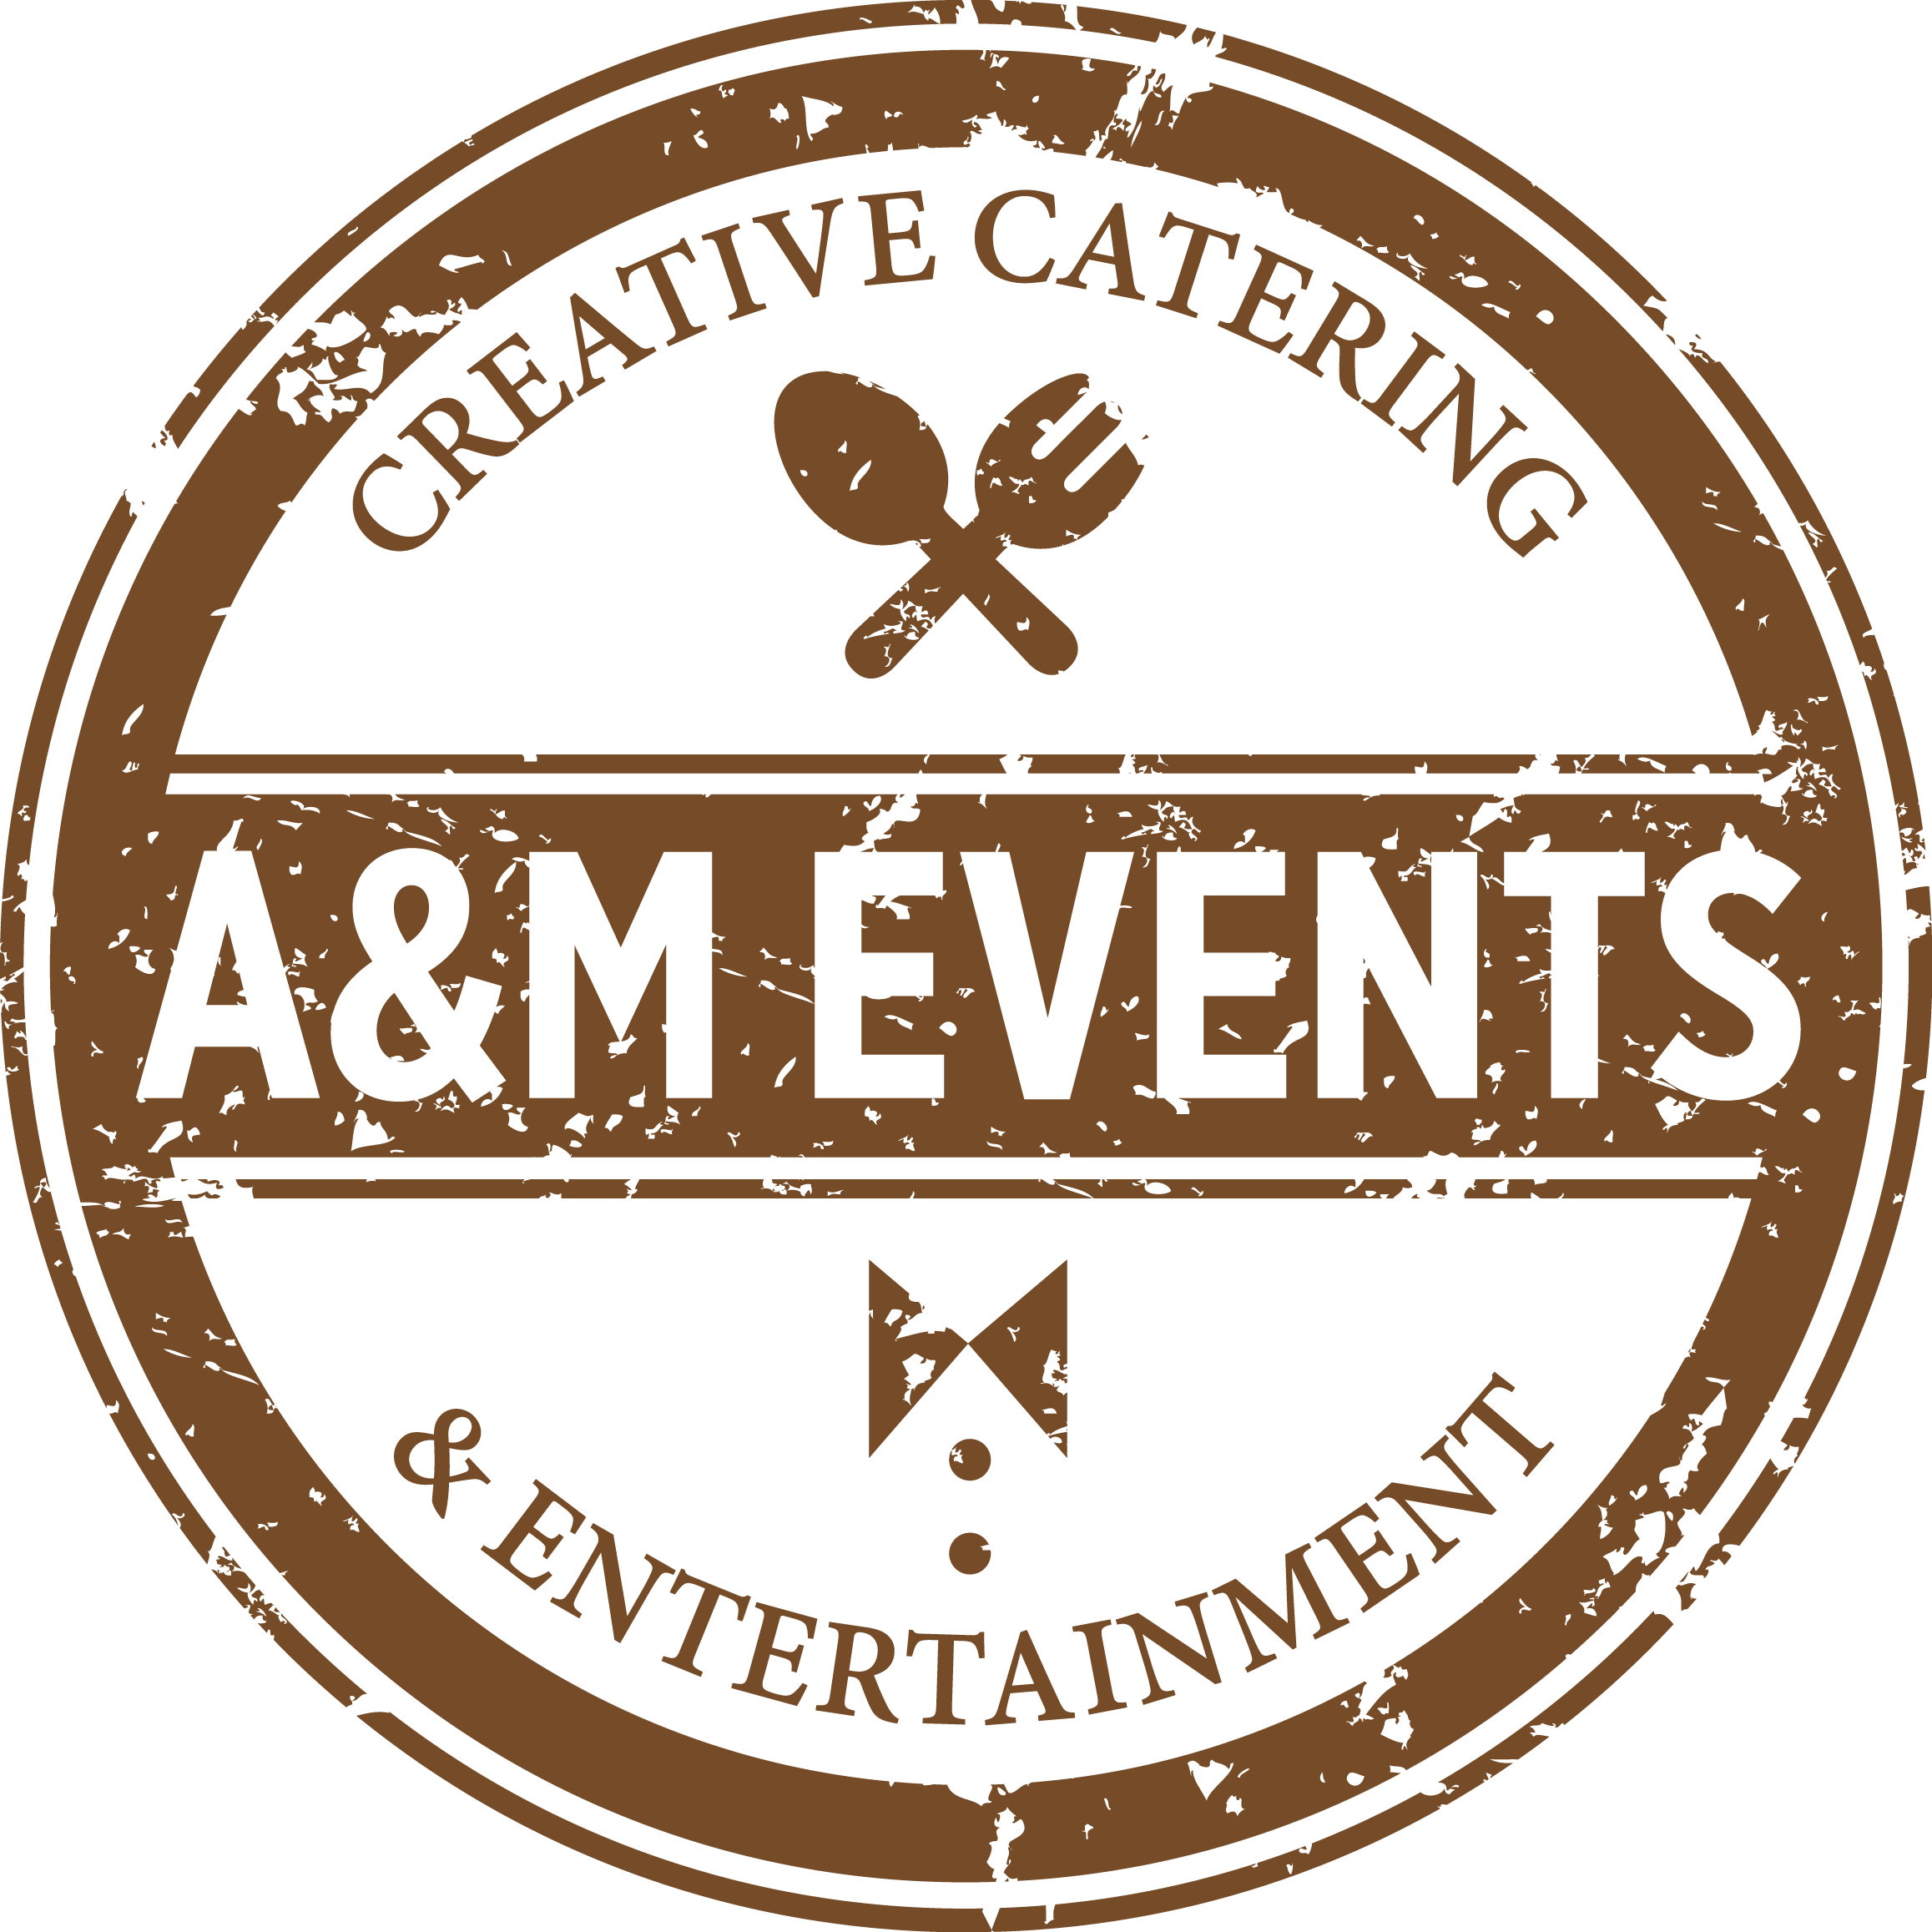 A & M Events